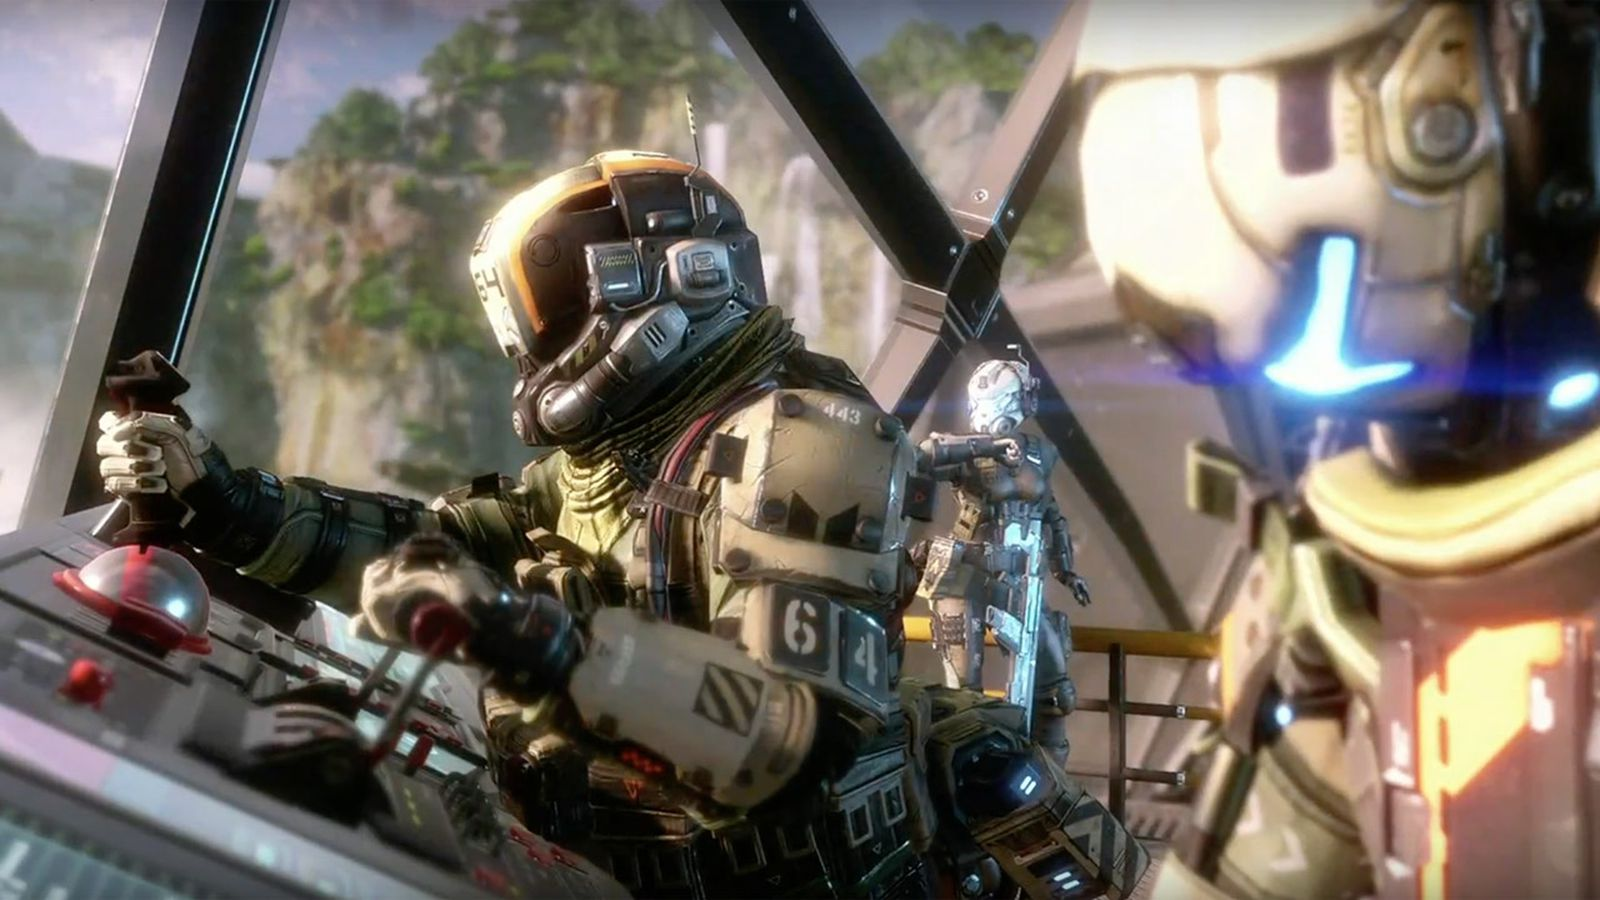 Iphone X Wallpaper Live Titanfall 2 Launches Oct 28 Comes With Offline Single